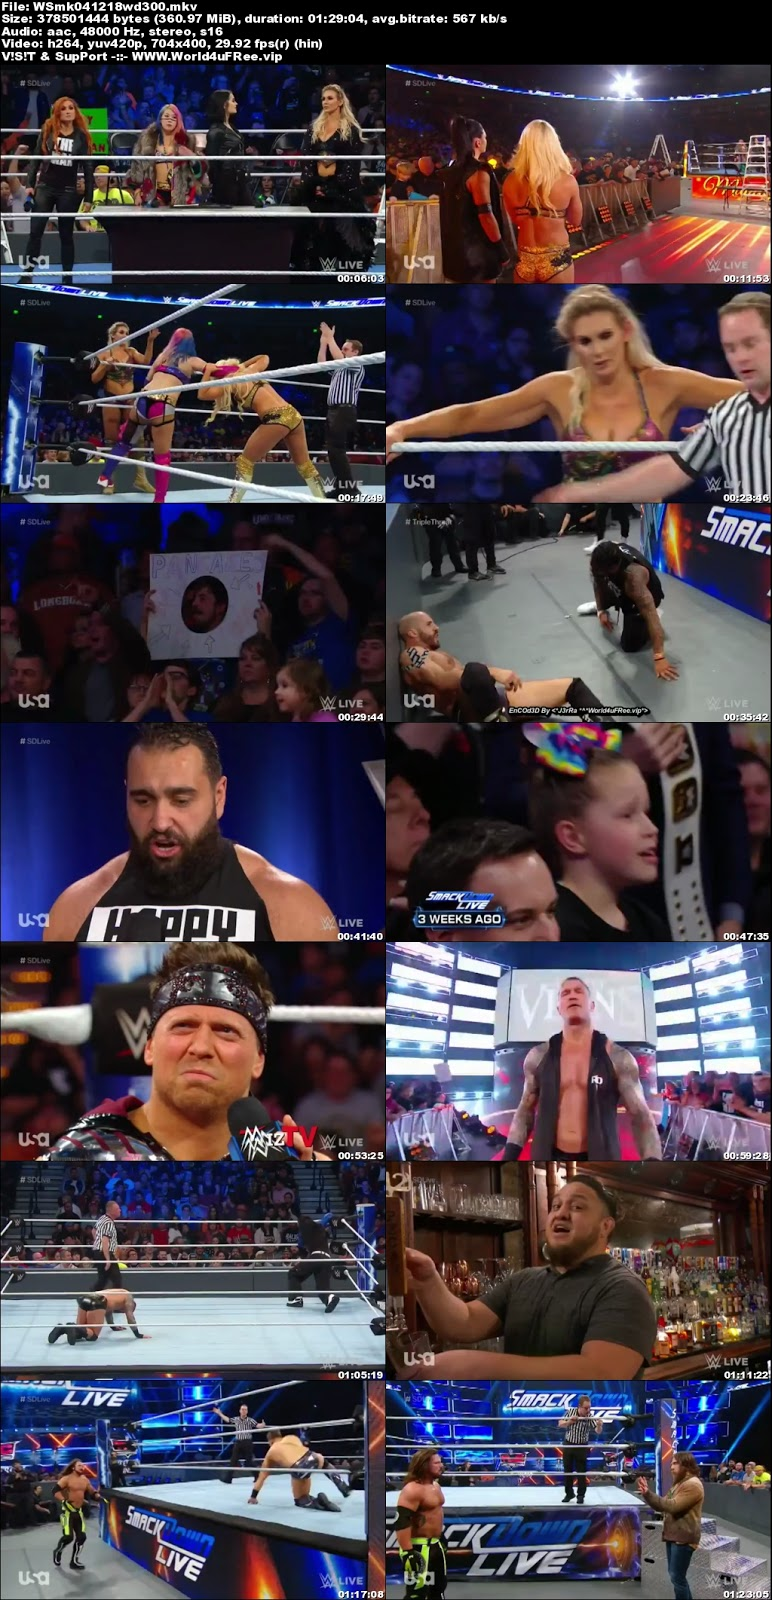 WWE Smackdown Live 04 DECEMBER 2018 HDTV 480p 350MB x264  tv show wwe WWE Smackdown Live 04 DECEMBER 2018 HDTV 480p 650MB x264 compressed small size free download or watch online at world4ufree.fun